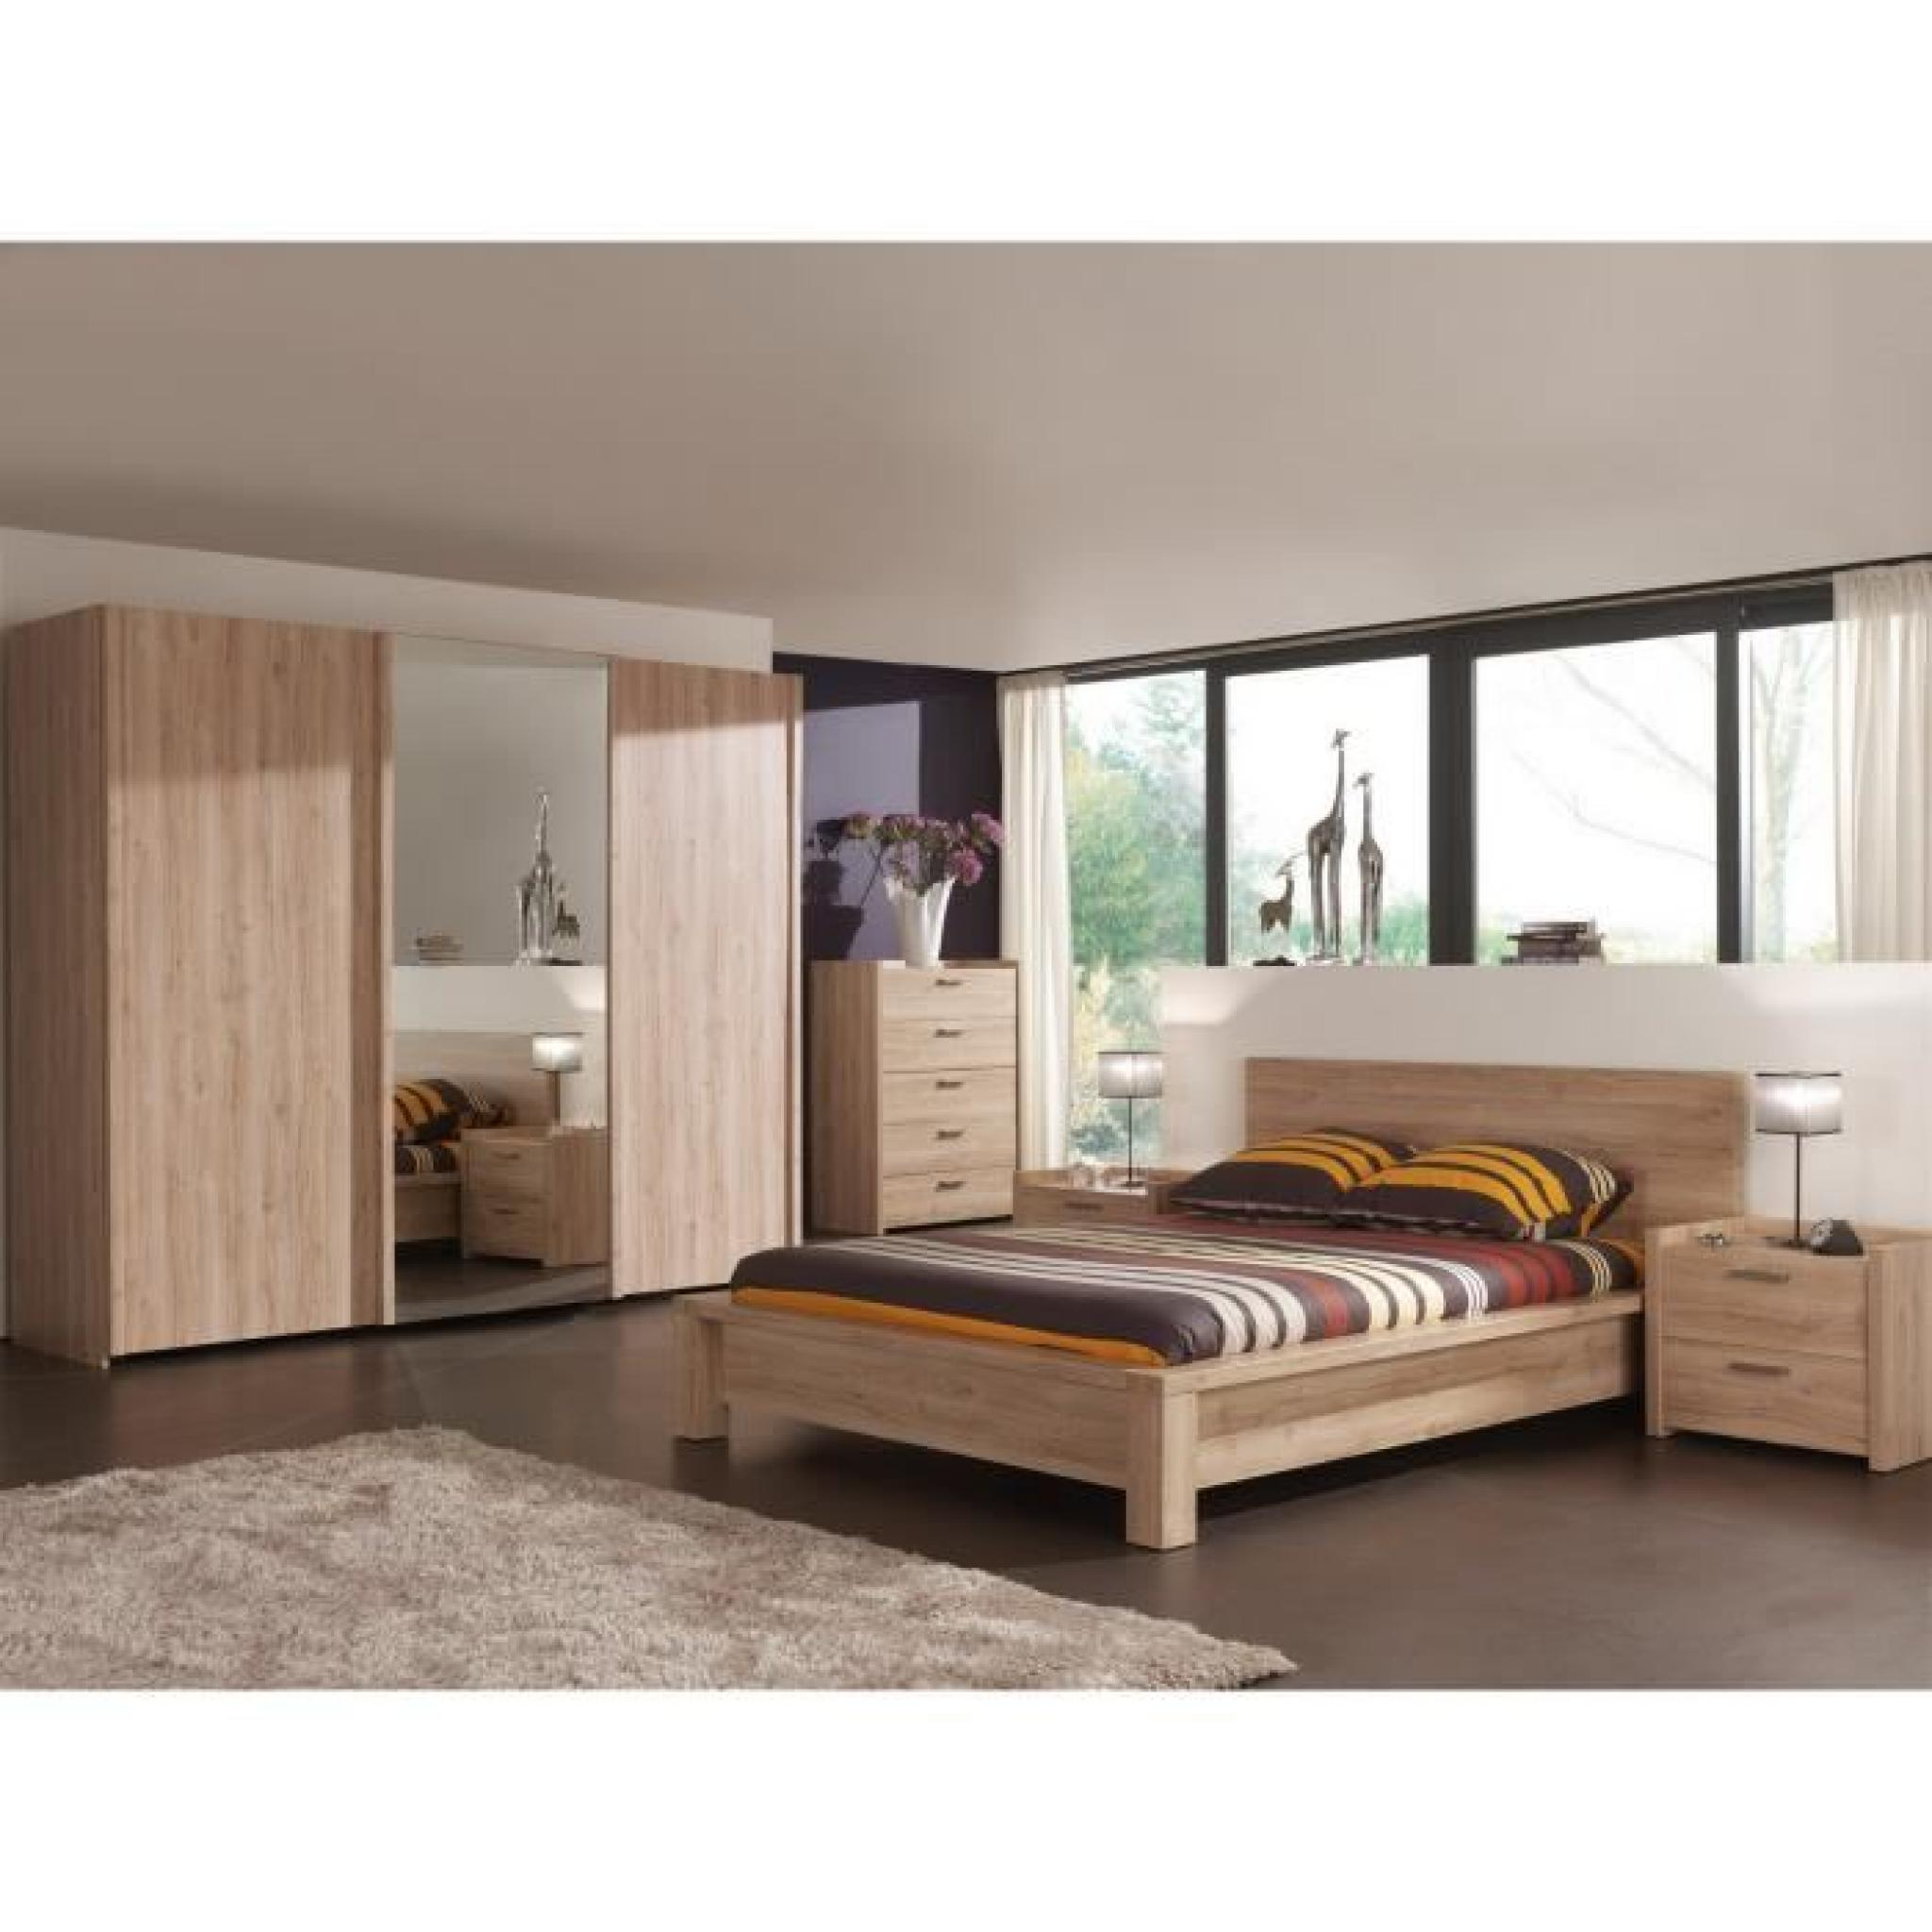 armoire chambre porte coulissante avec miroir bois design. Black Bedroom Furniture Sets. Home Design Ideas